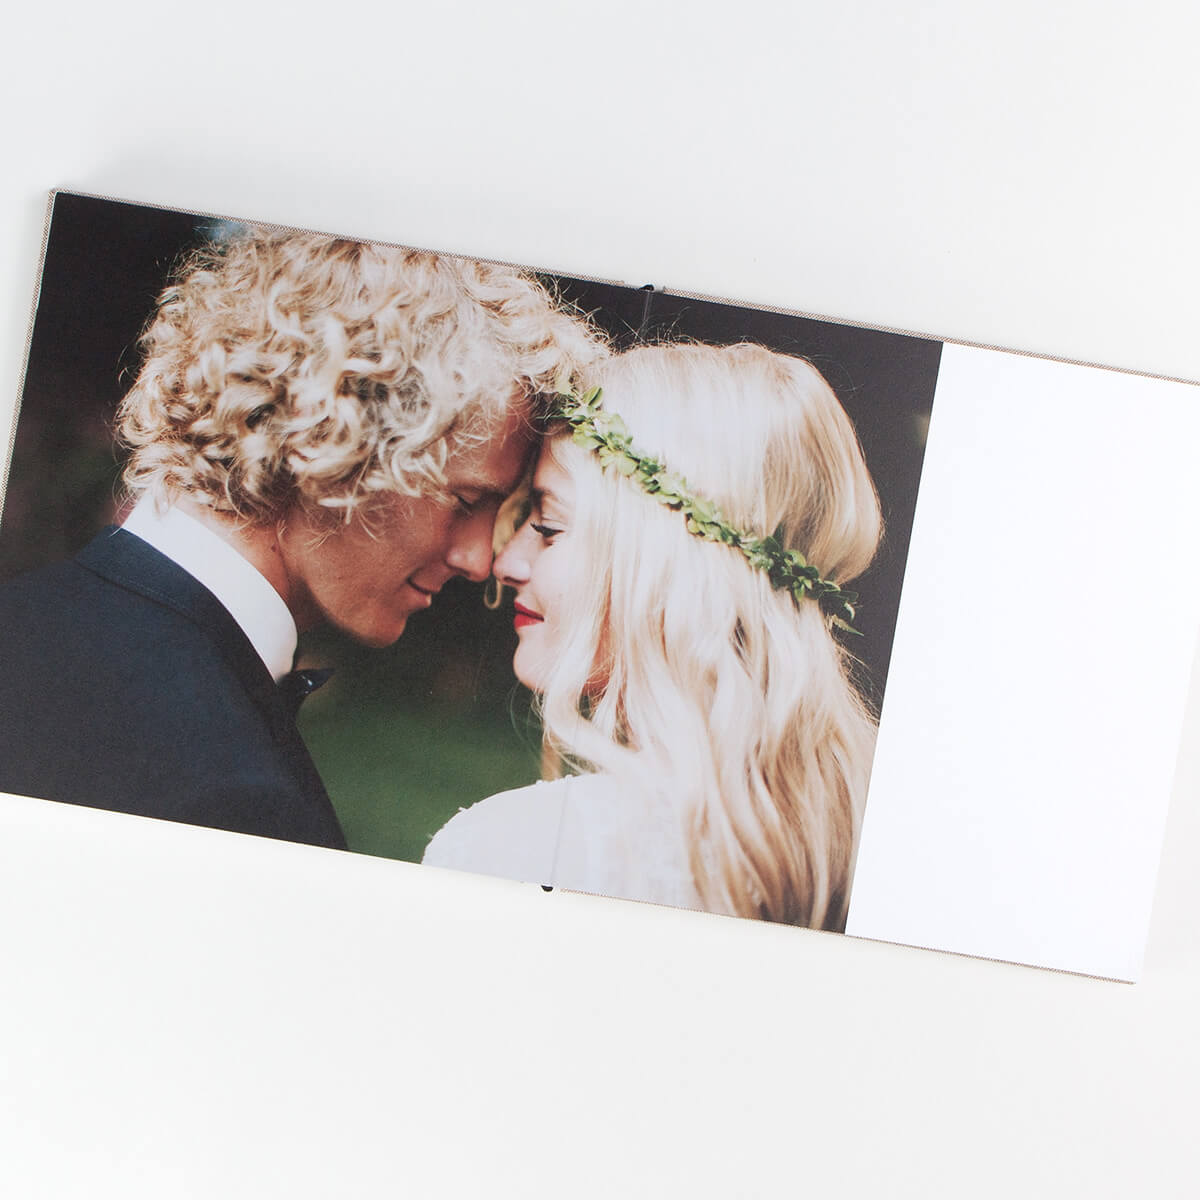 Photo book spread, one wedding photo spanning two pages